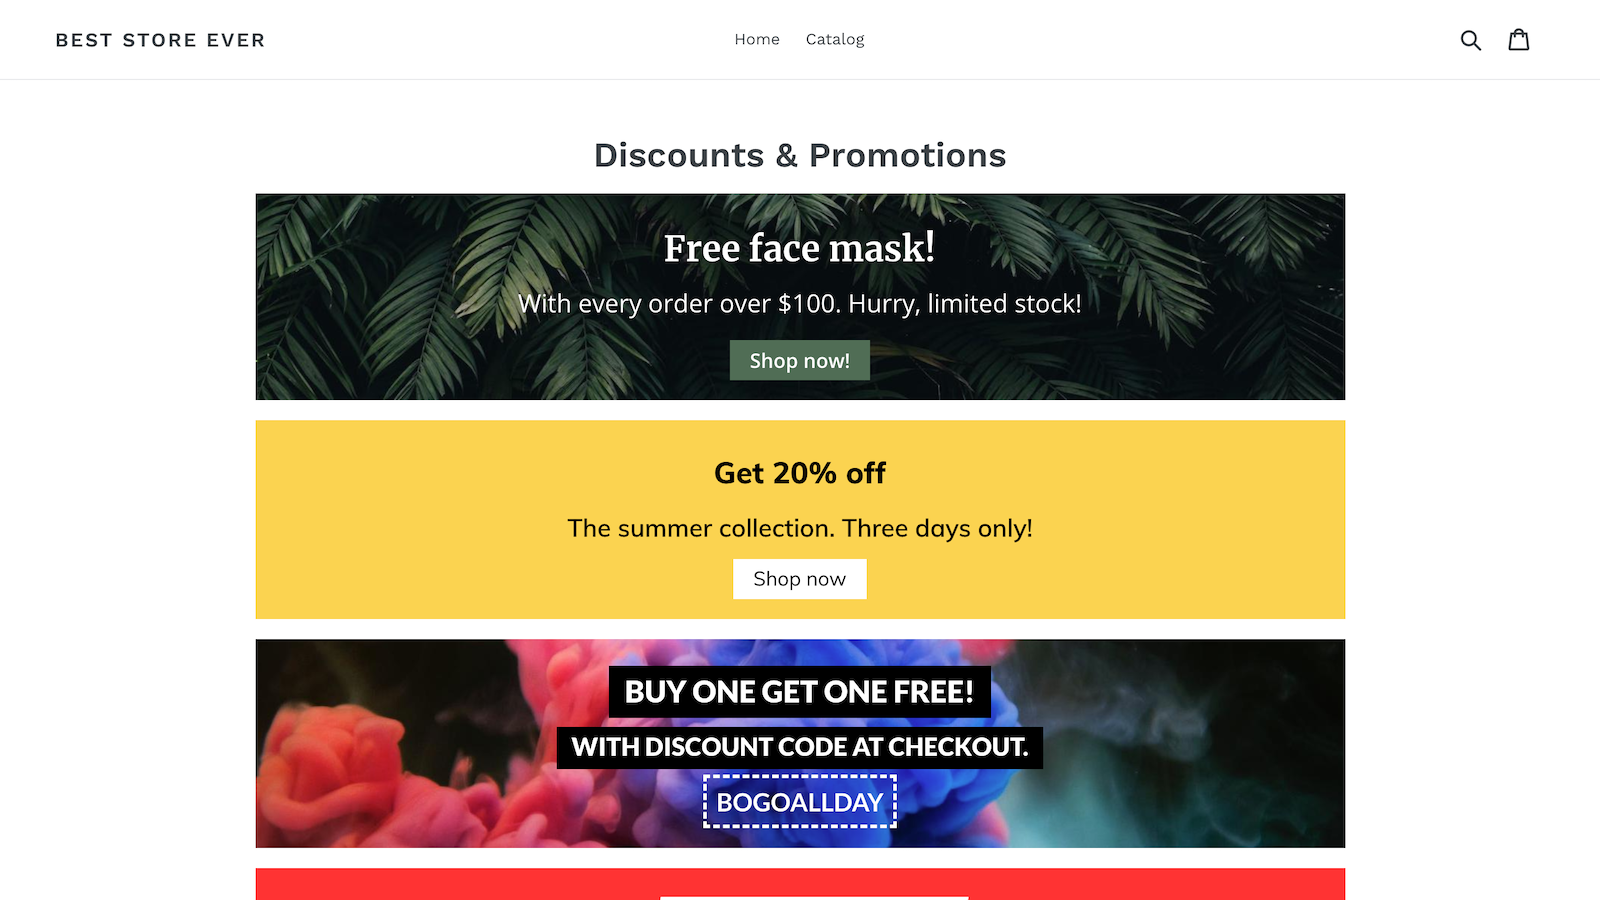 Easy Discounts & Promotions in an online store